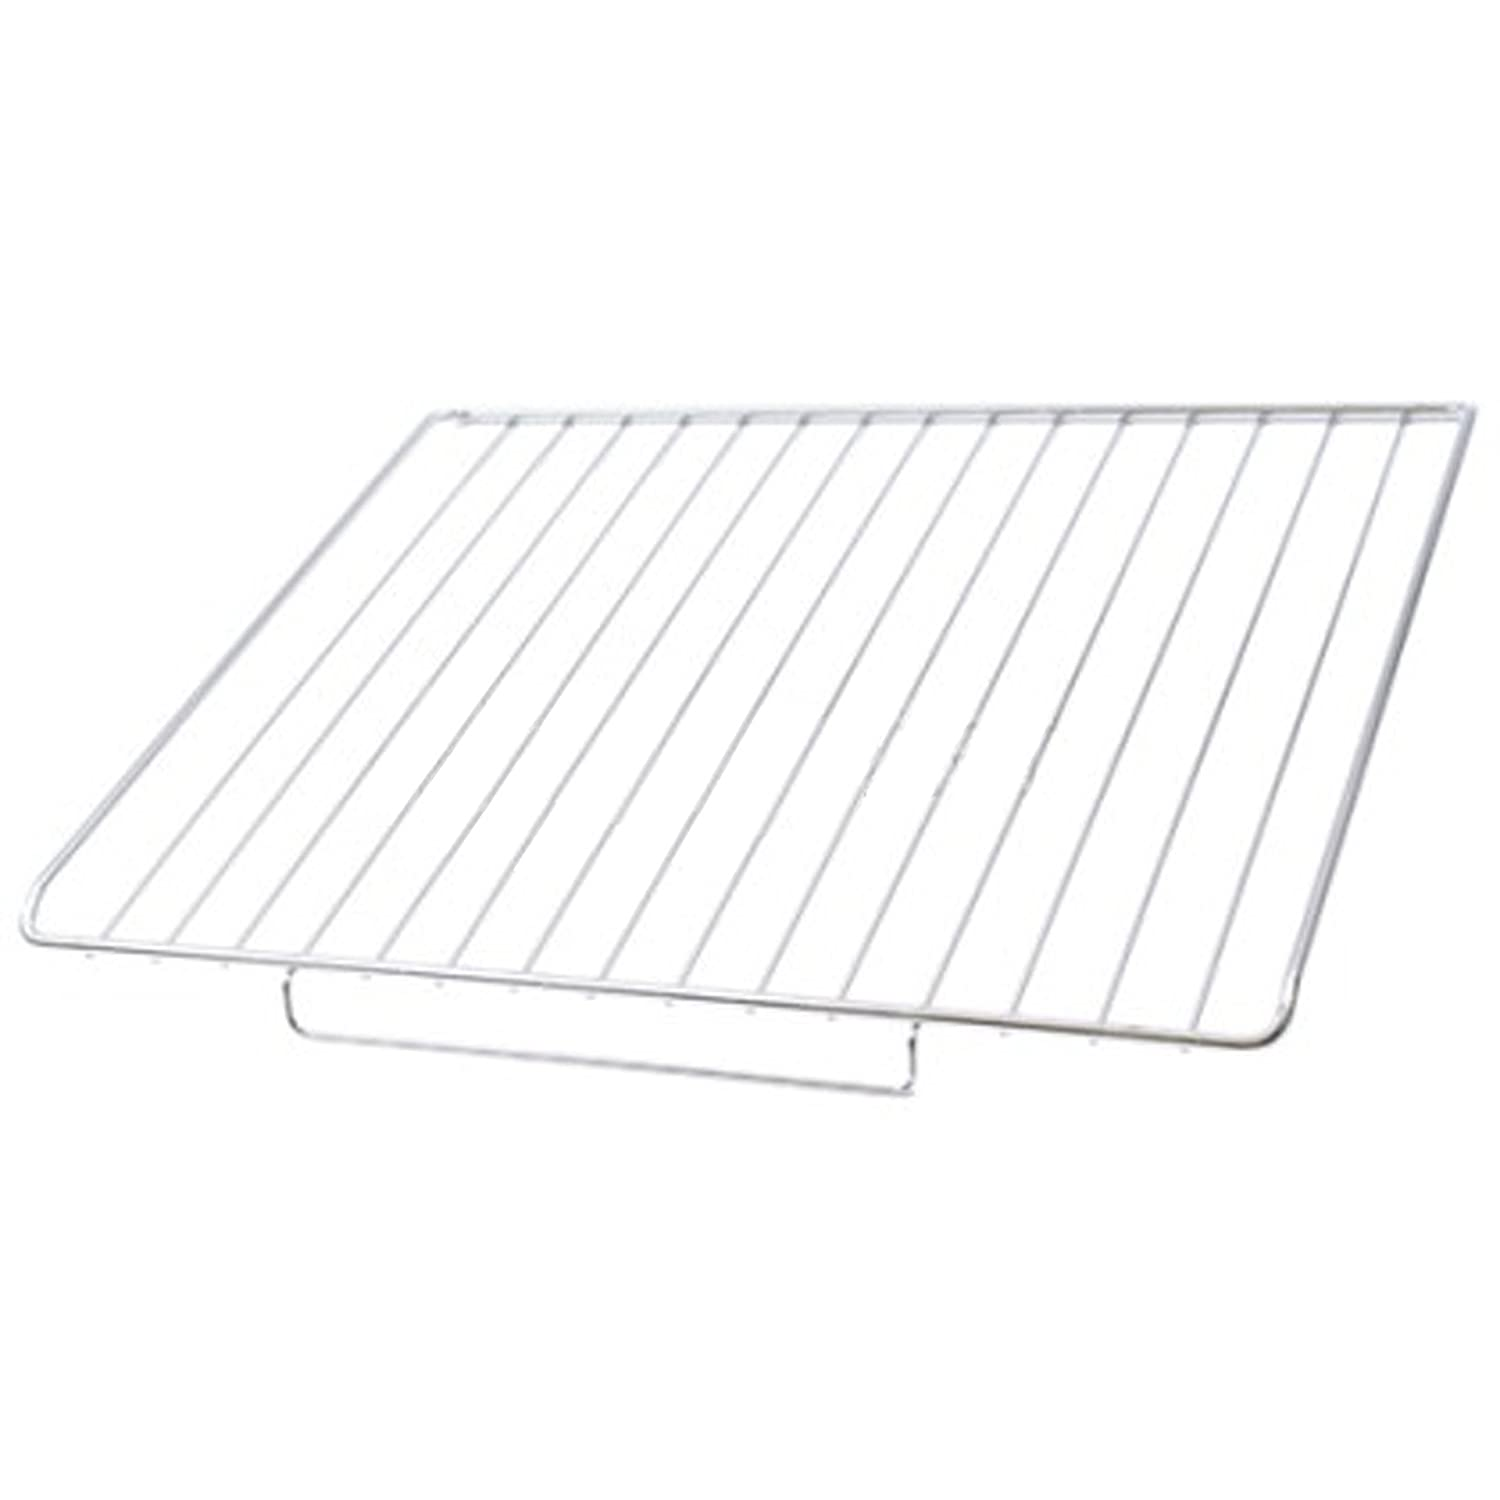 SPARES2GO Oven Shelf For Hotpoint Oven/Cooker